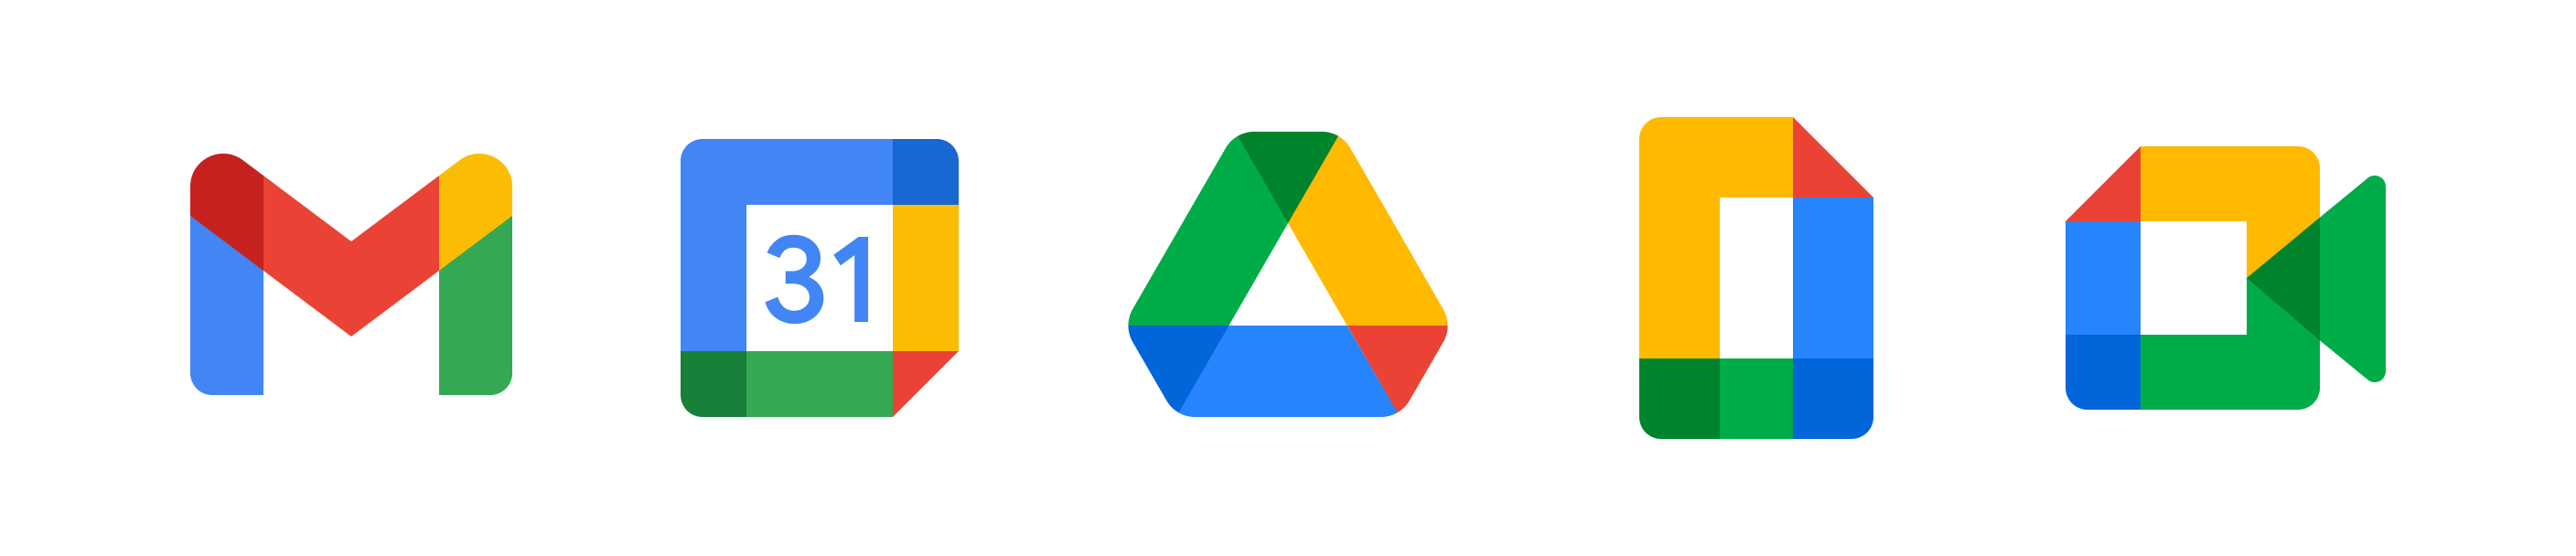 google-workspace-icons.png